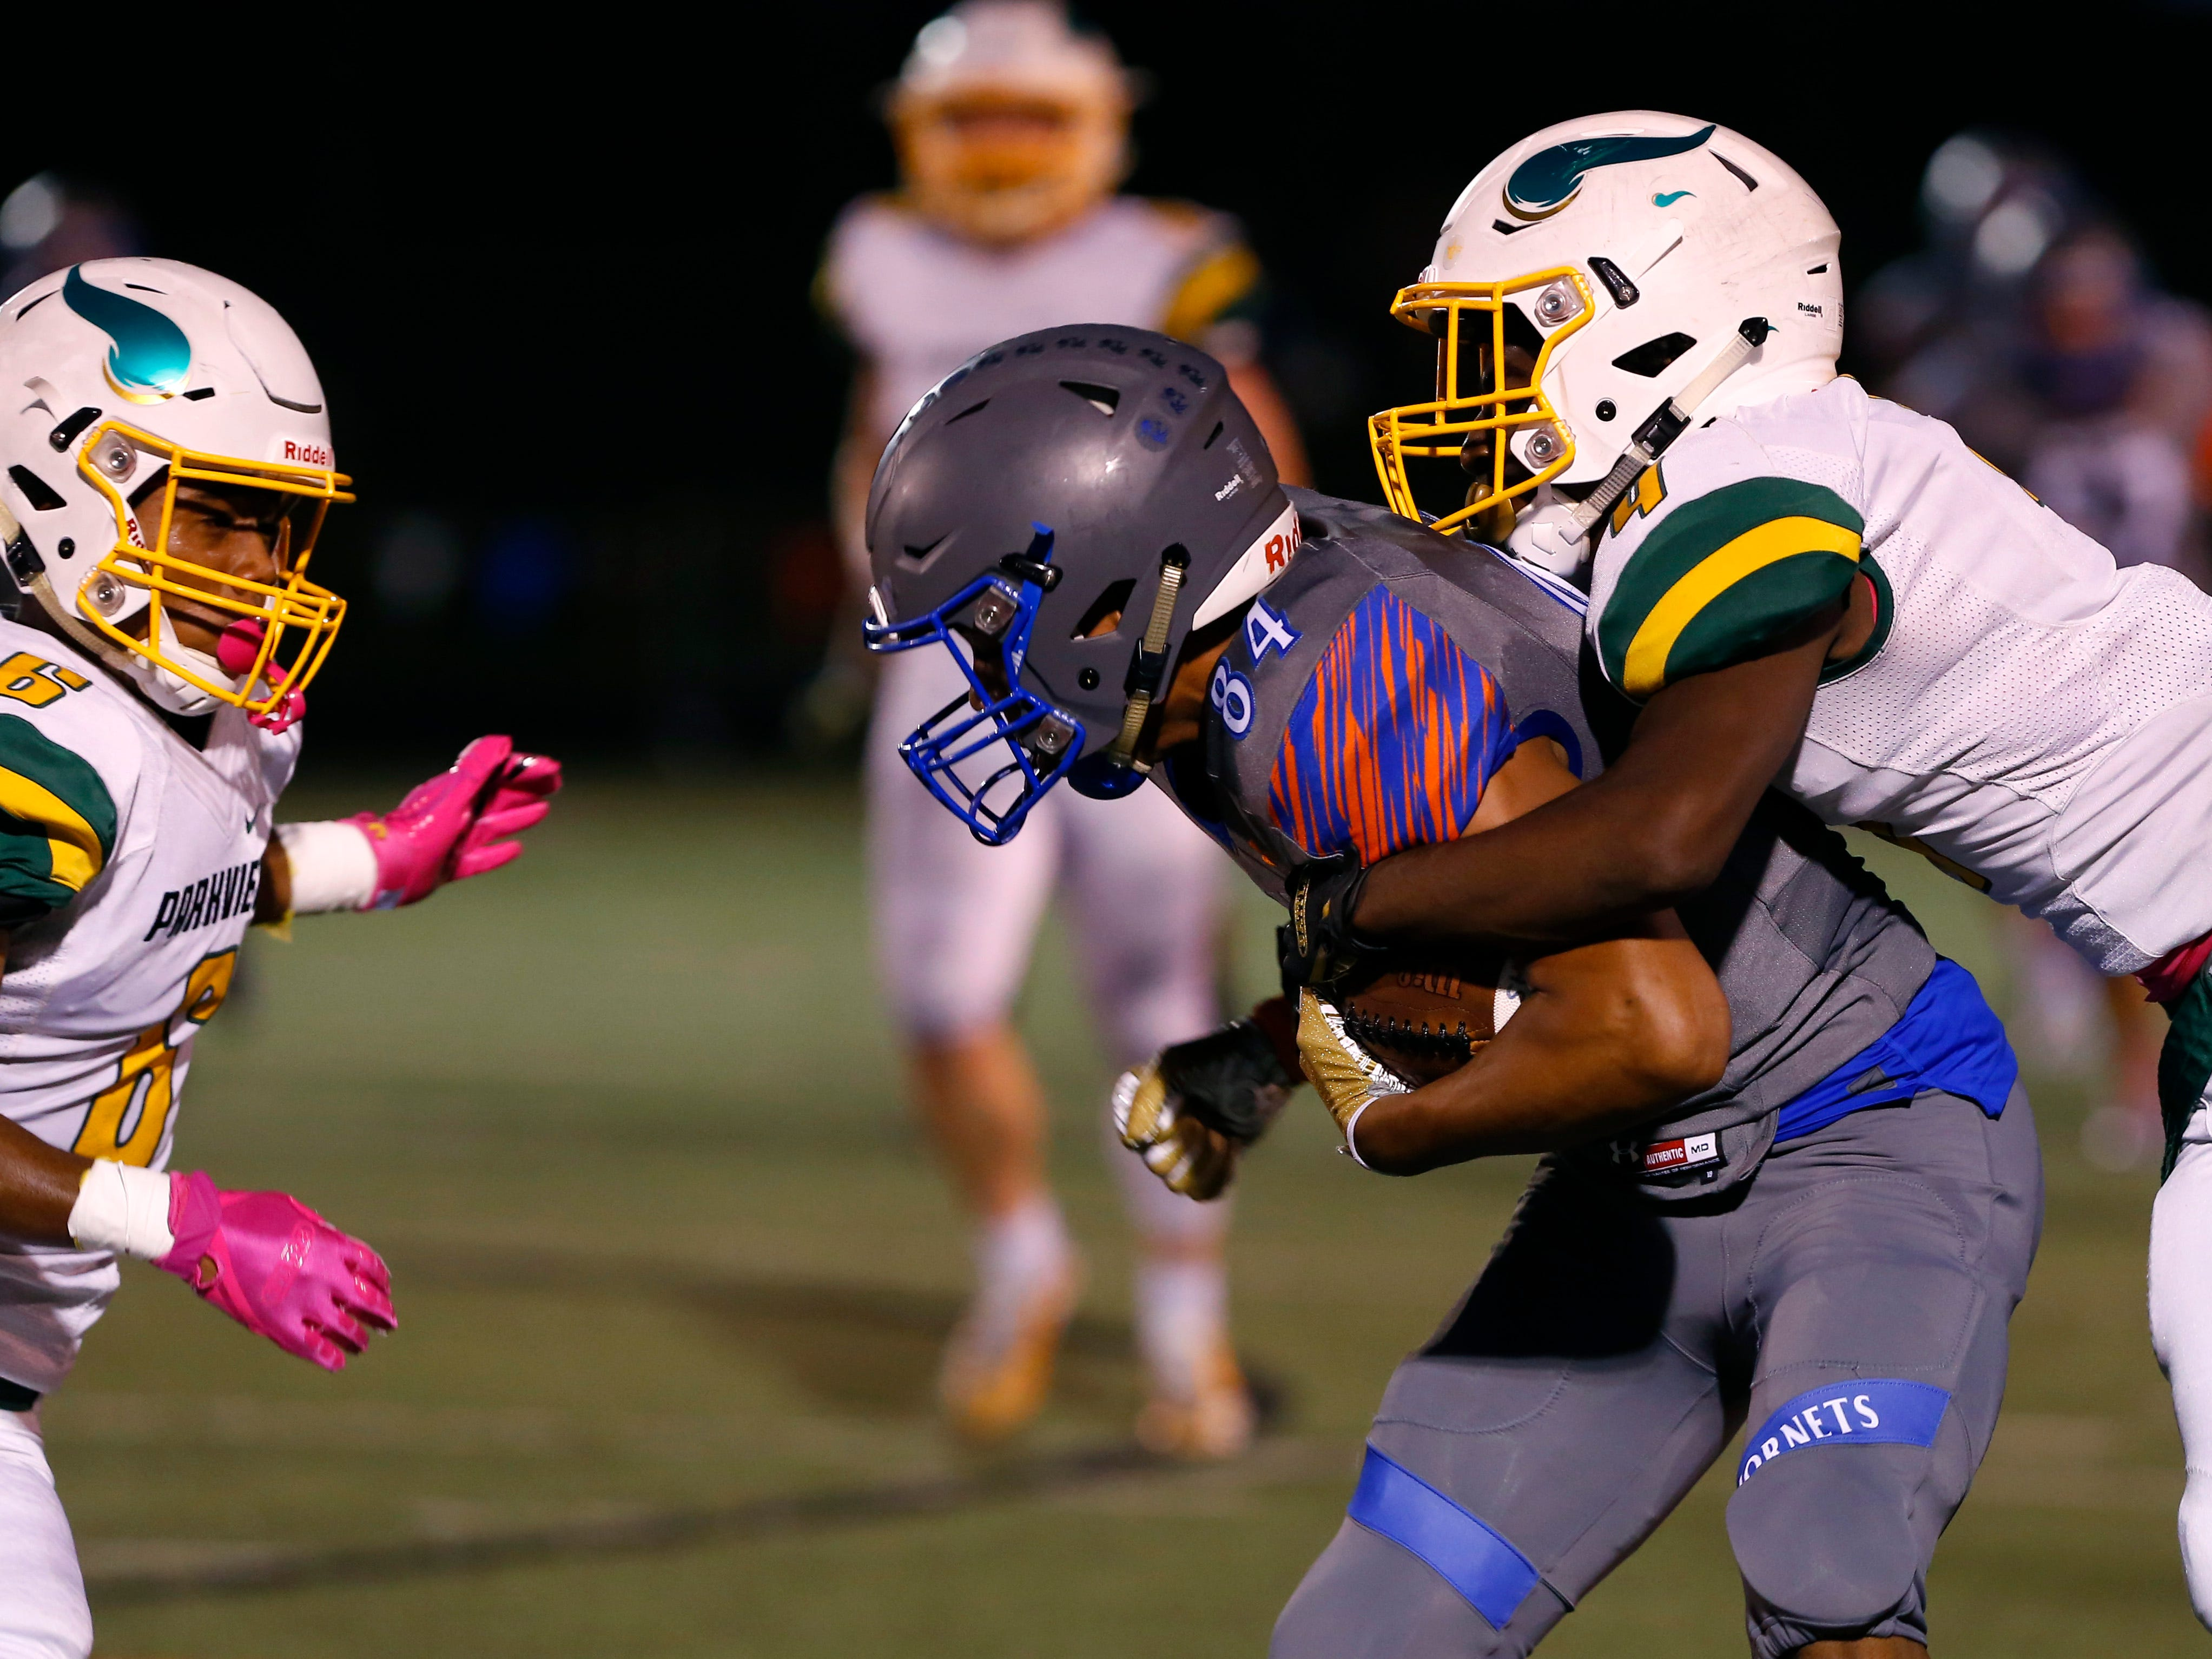 The Hillcrest Hornets took on the Parkview Vikings at Hillcrest on Friday, Oct. 5, 2018